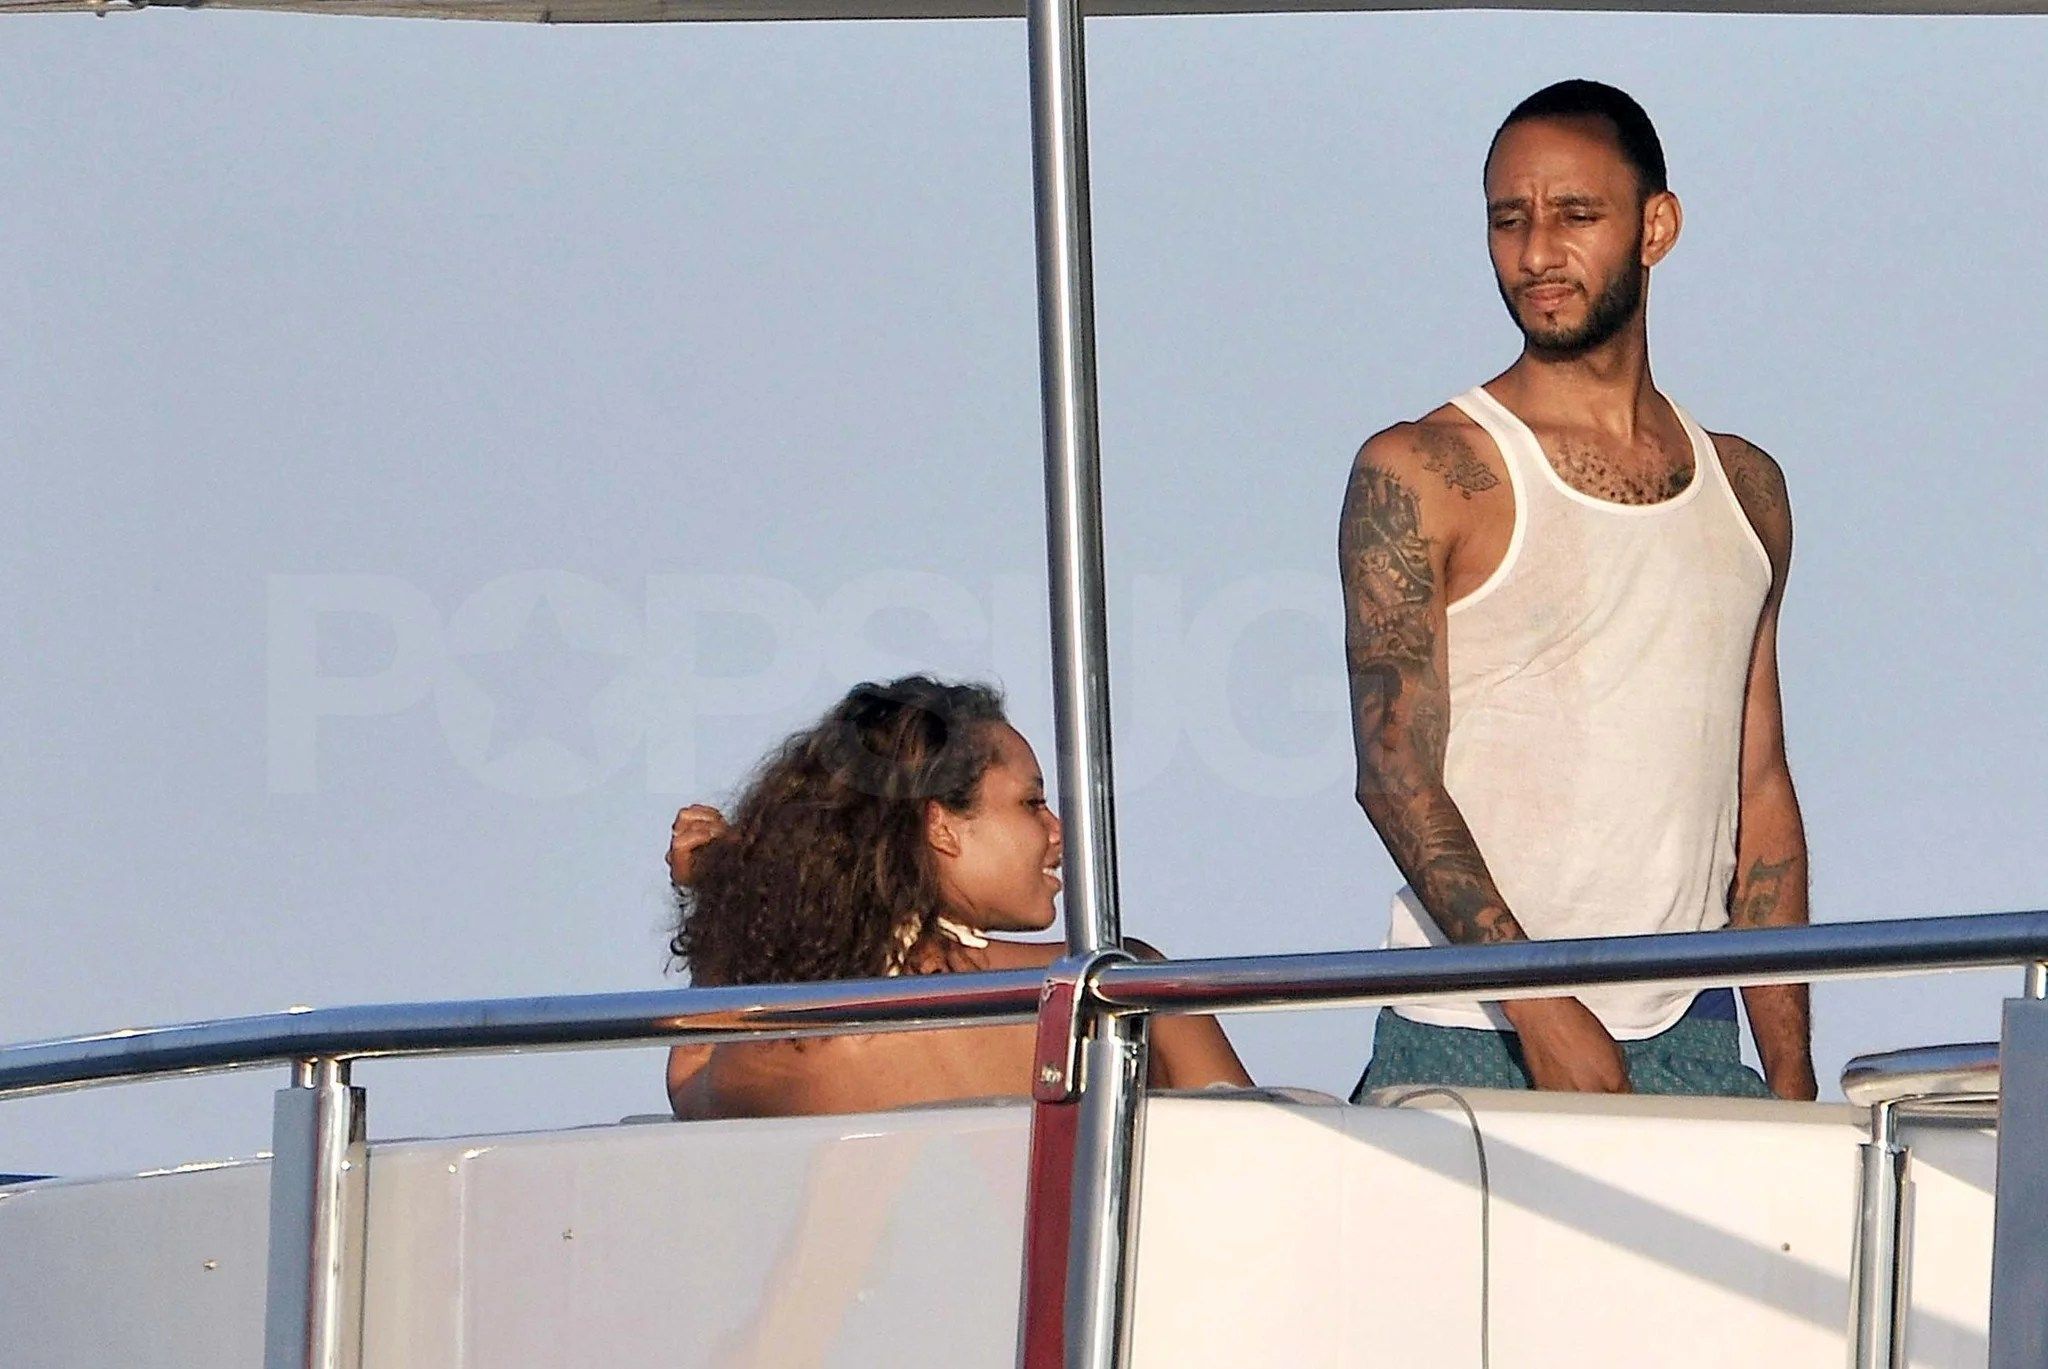 Pictures Of Alicia Keys Pregnant In Bikini On Yacht